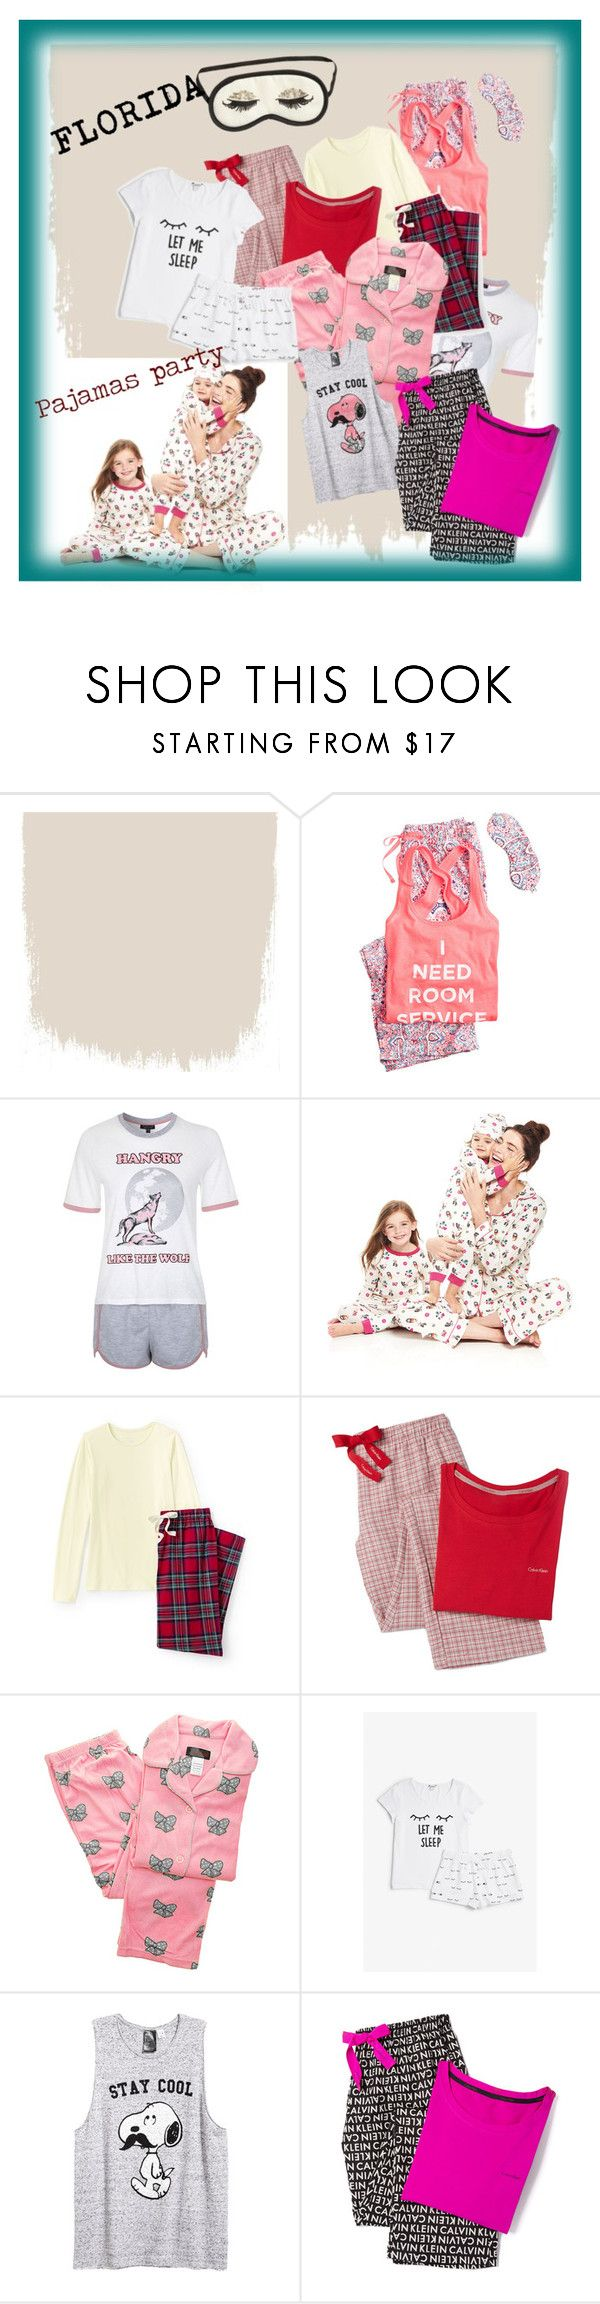 """Pajamas party"" by floridanuha ❤ liked on Polyvore featuring Victoria's Secret, H&M, Topshop, Bed Head by TIGI, Lands' End, Calvin Klein Underwear, ANGELINA, Monki and plus size clothing"